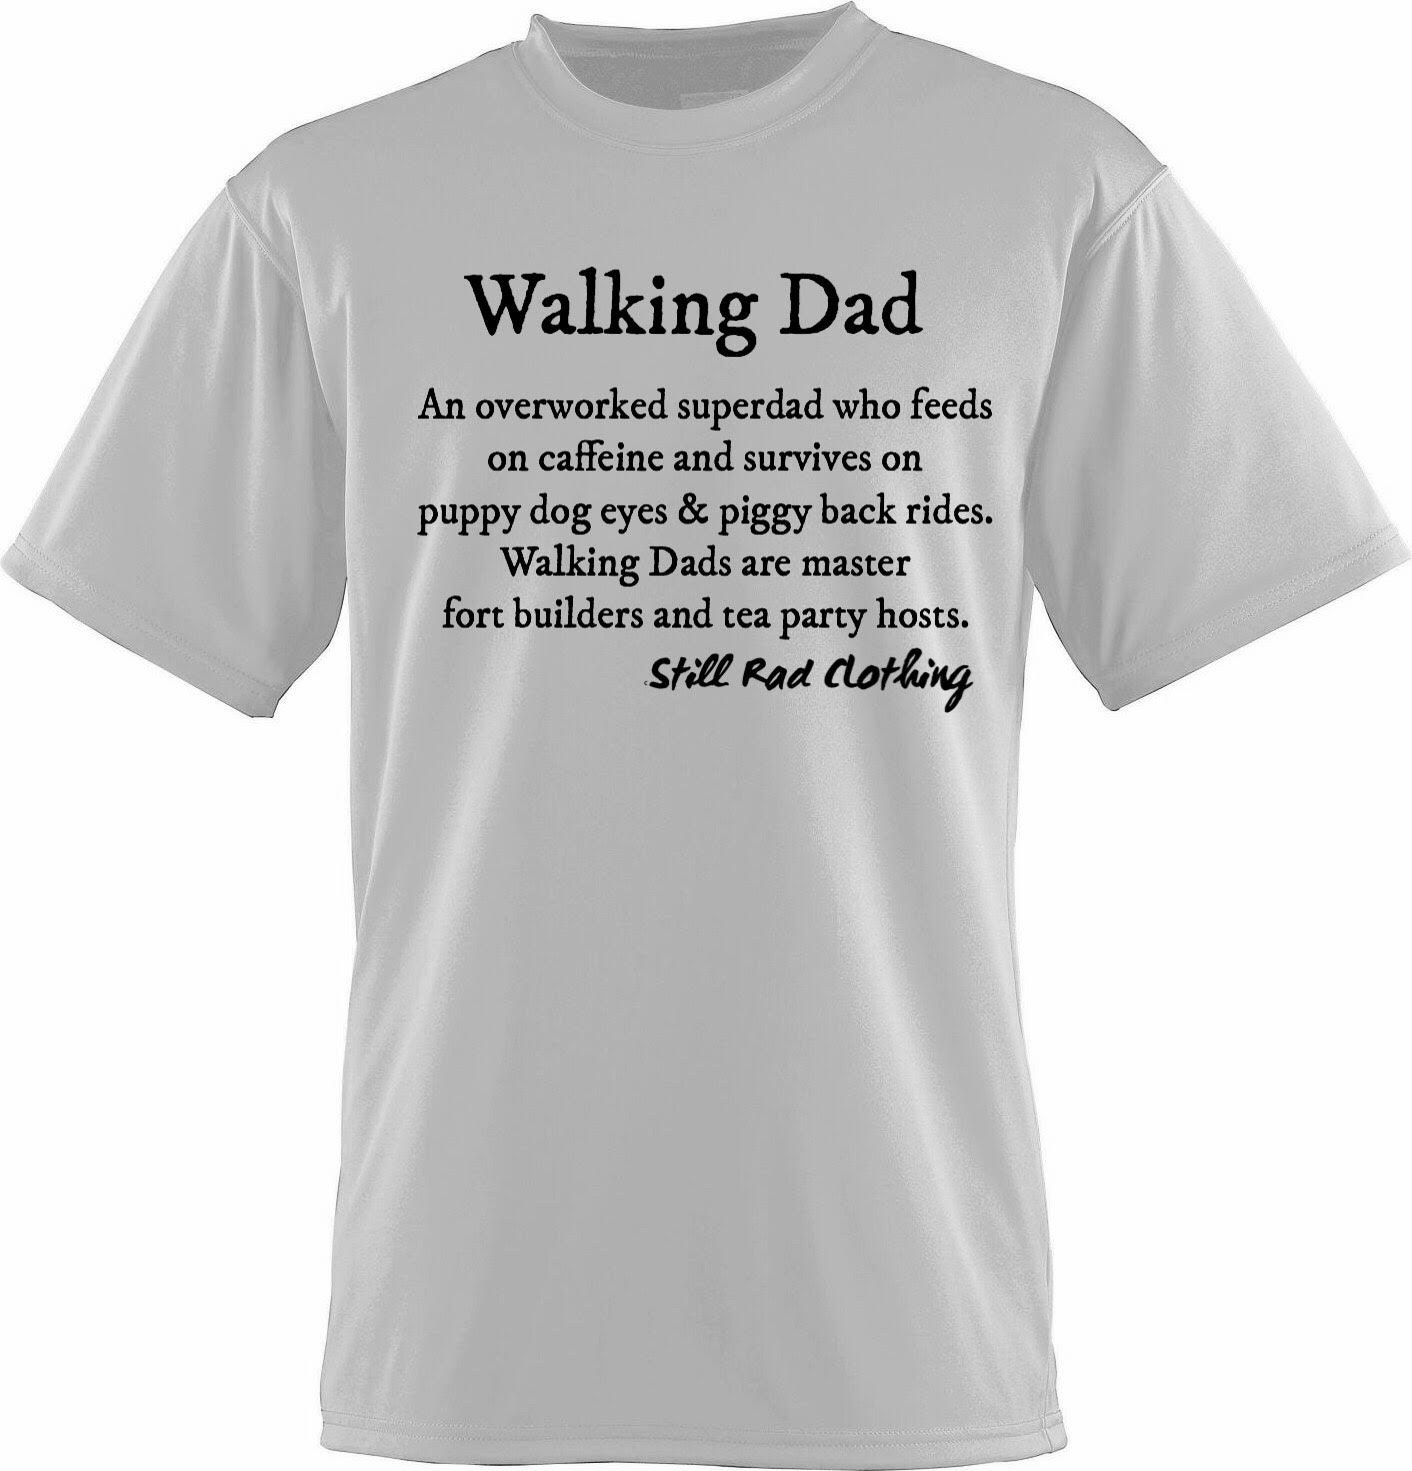 Walking Dad Shirt Size S father's day gift funny tees